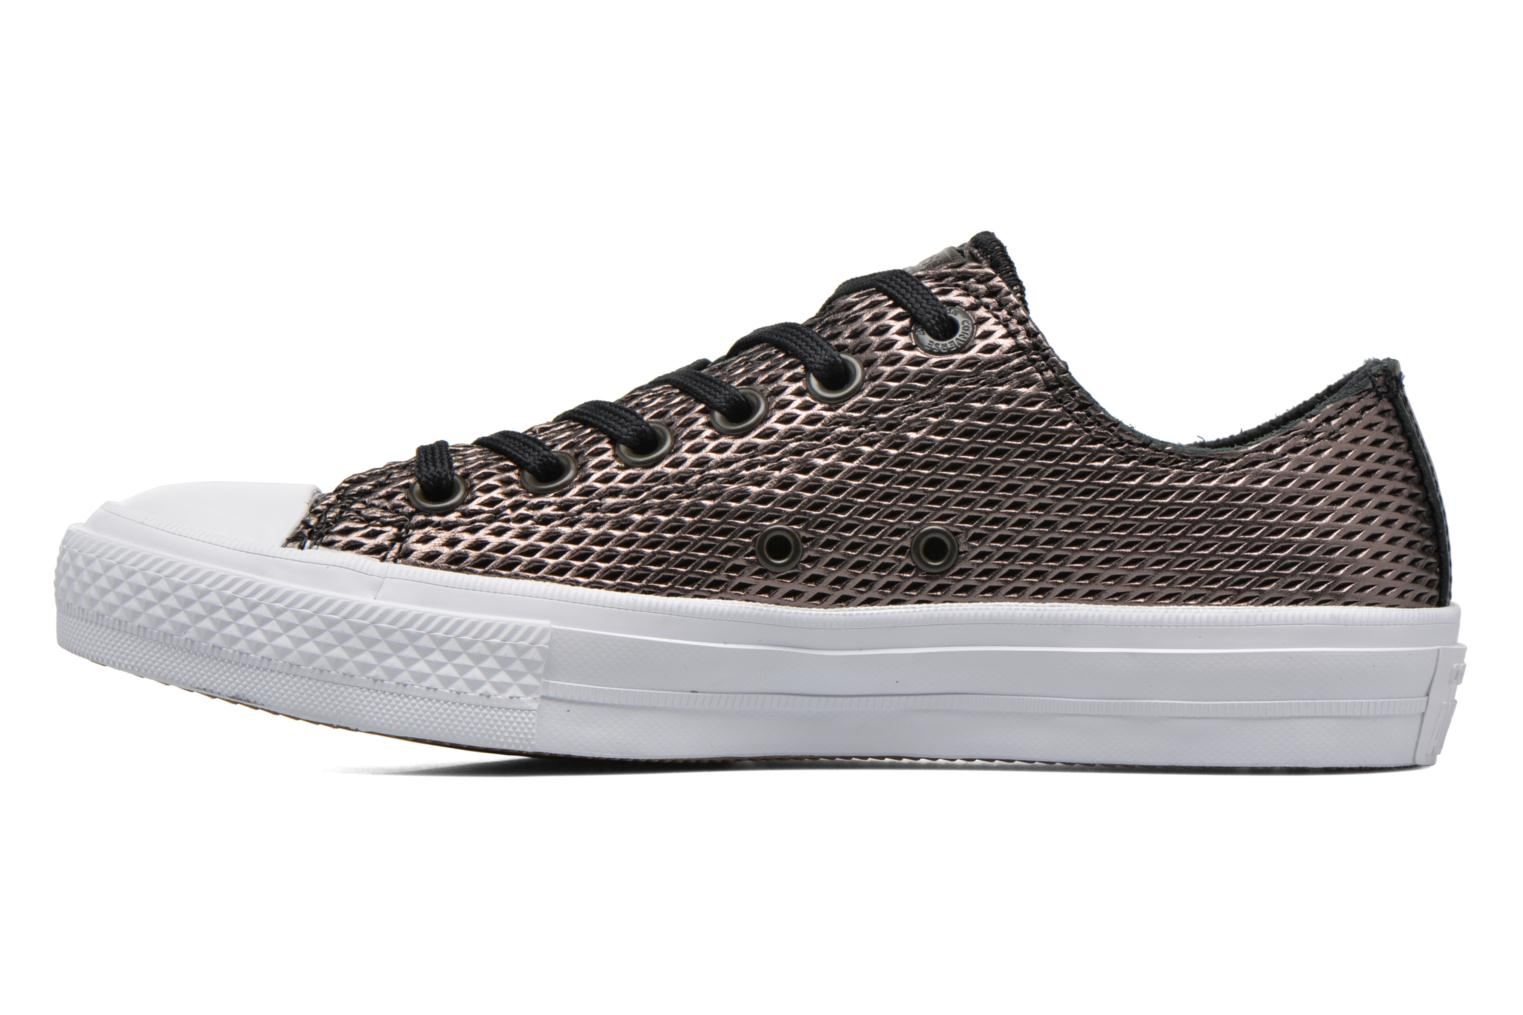 Chuck Taylor All Star II Ox Perf Metallic Leather Black/black/white